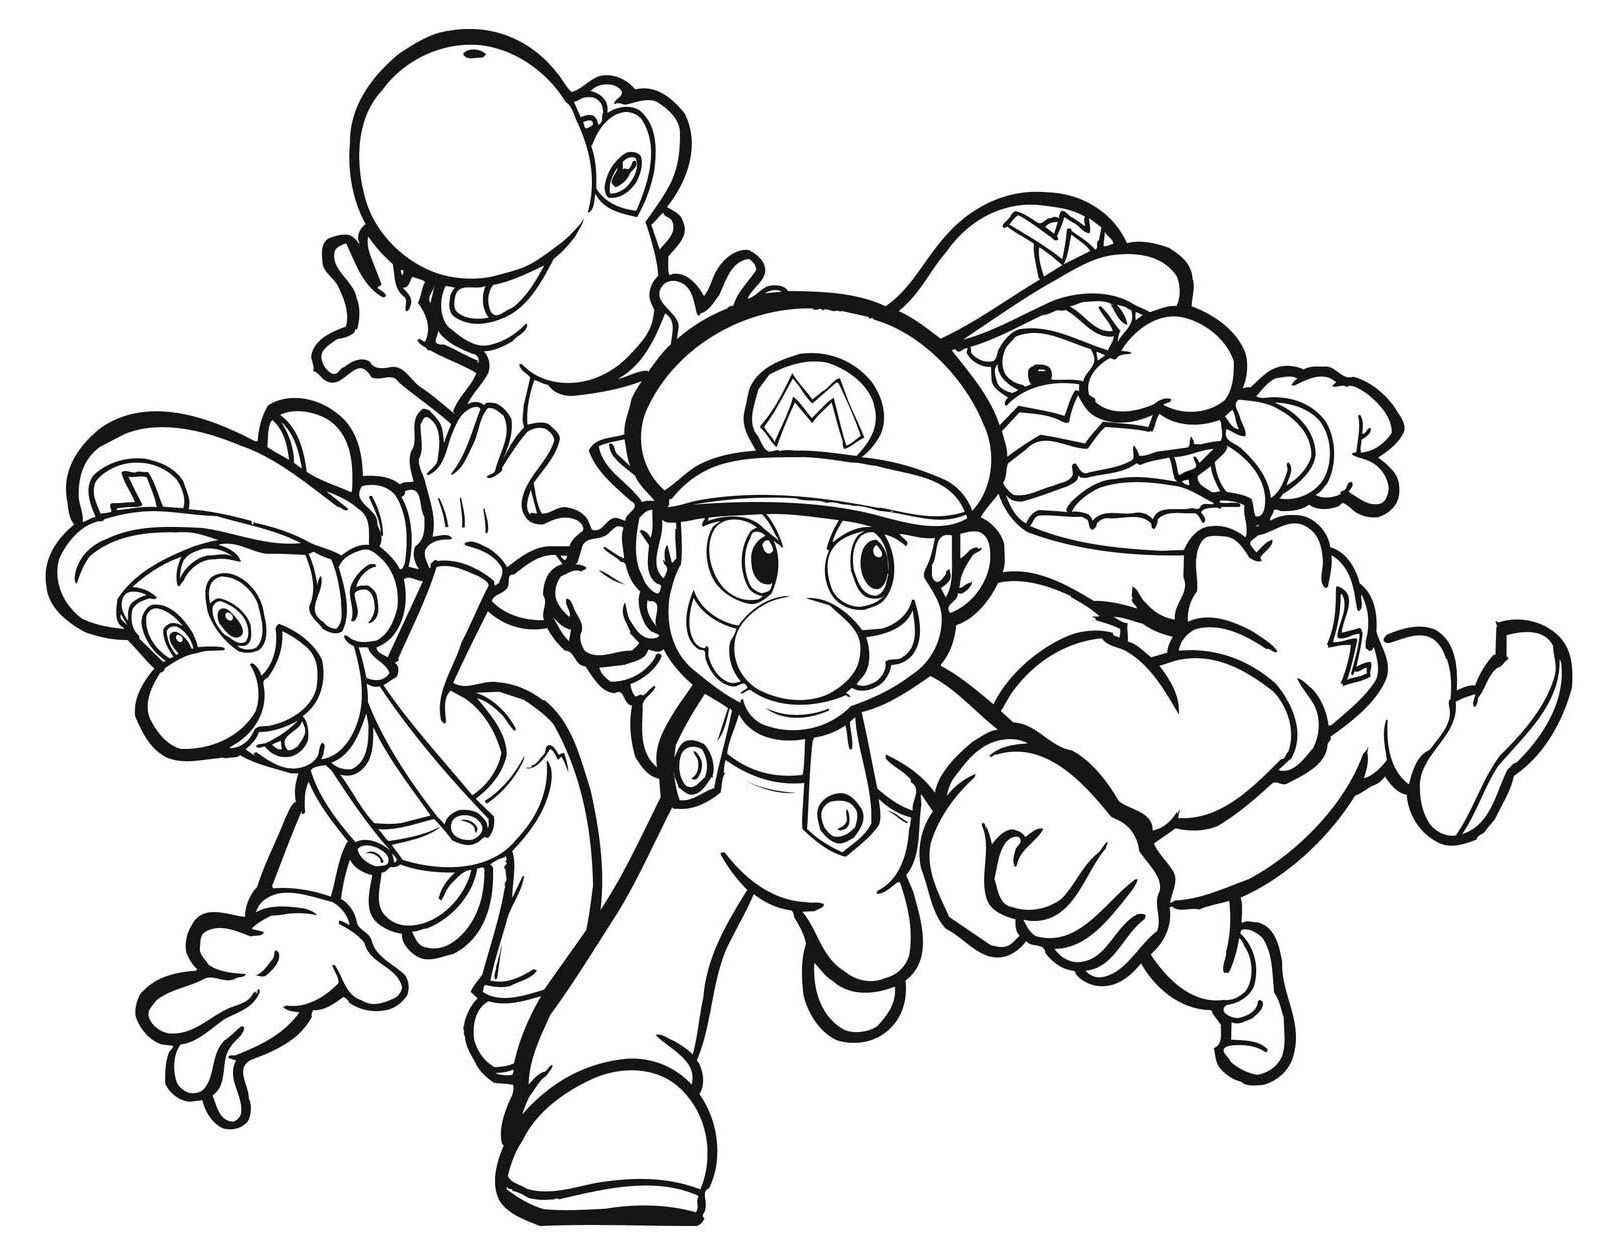 mario kart coloring pages free - photo#20